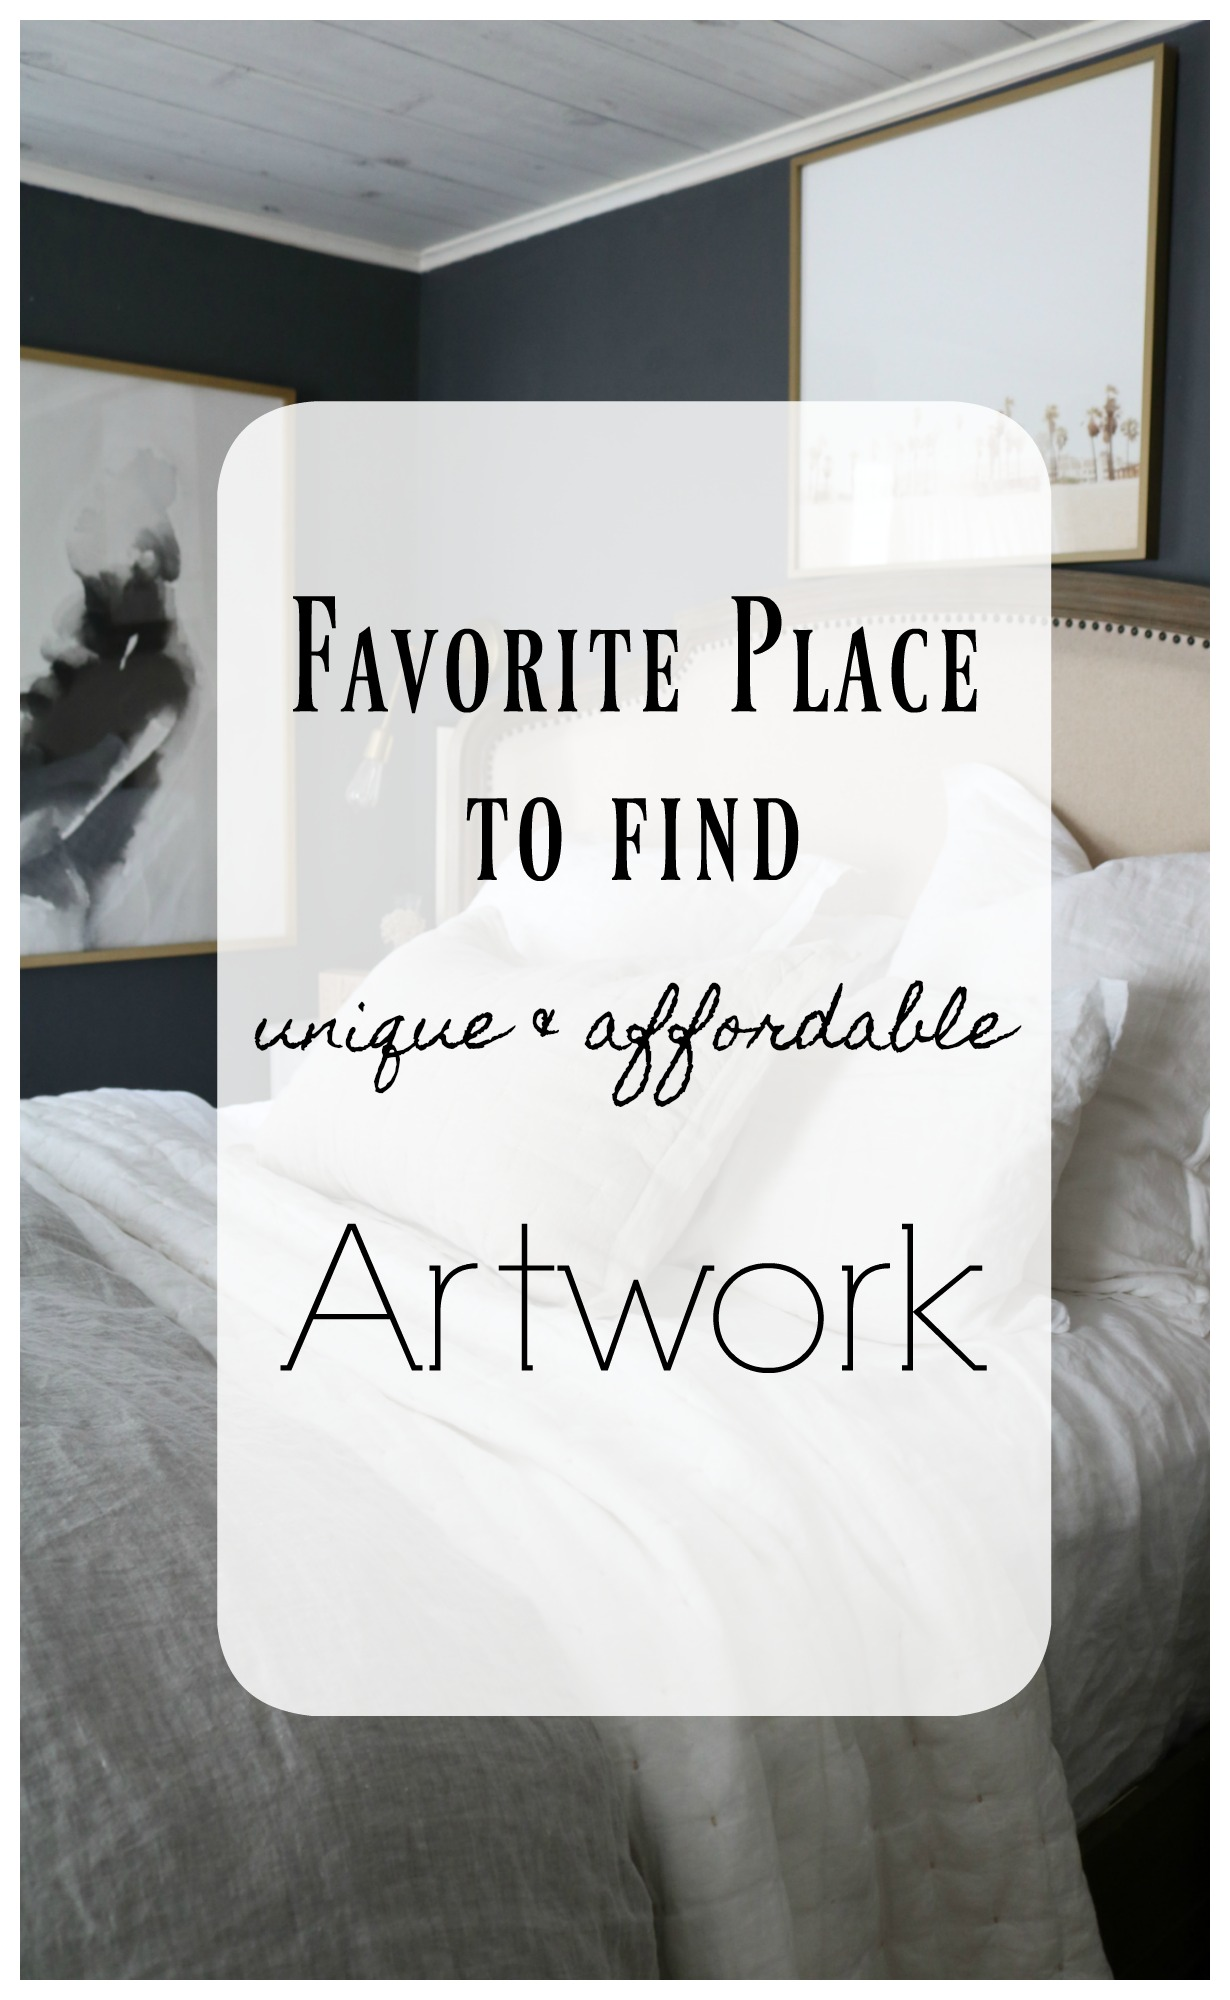 Favorite Place to find Unique and Affordable- Artwork